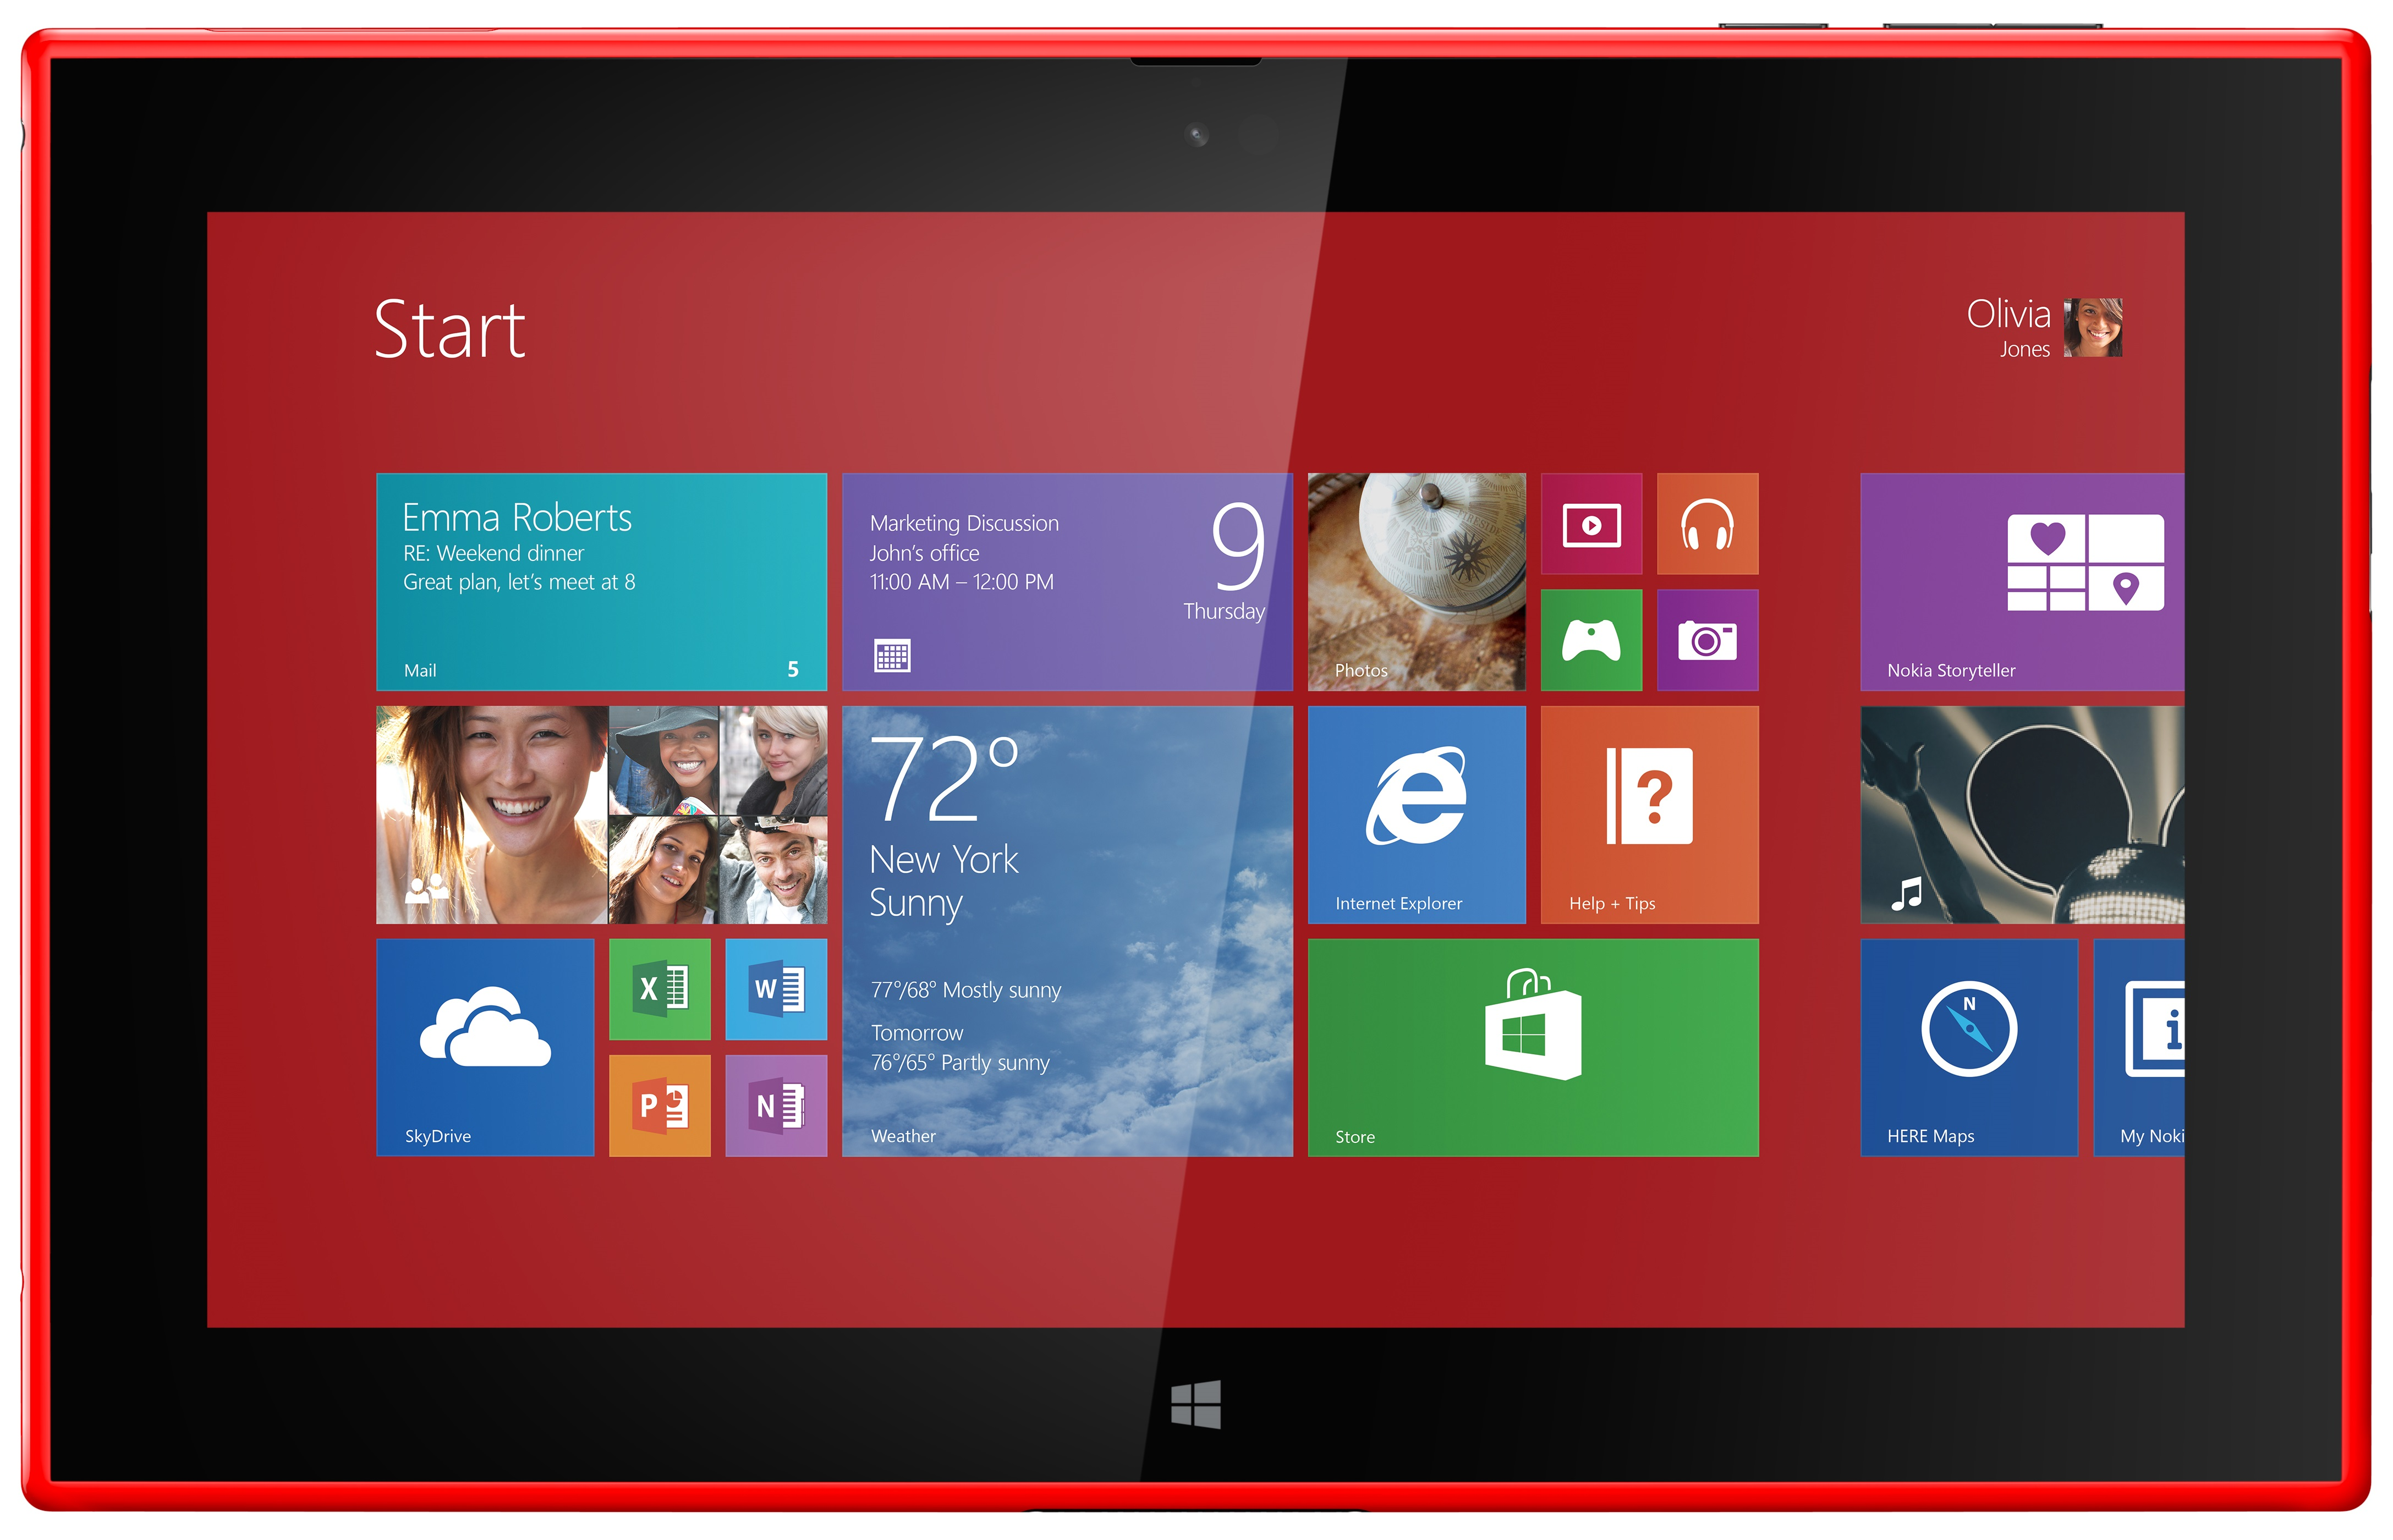 1080p Windows 8.1 Tablet The Windows rt 8.1 Device Will